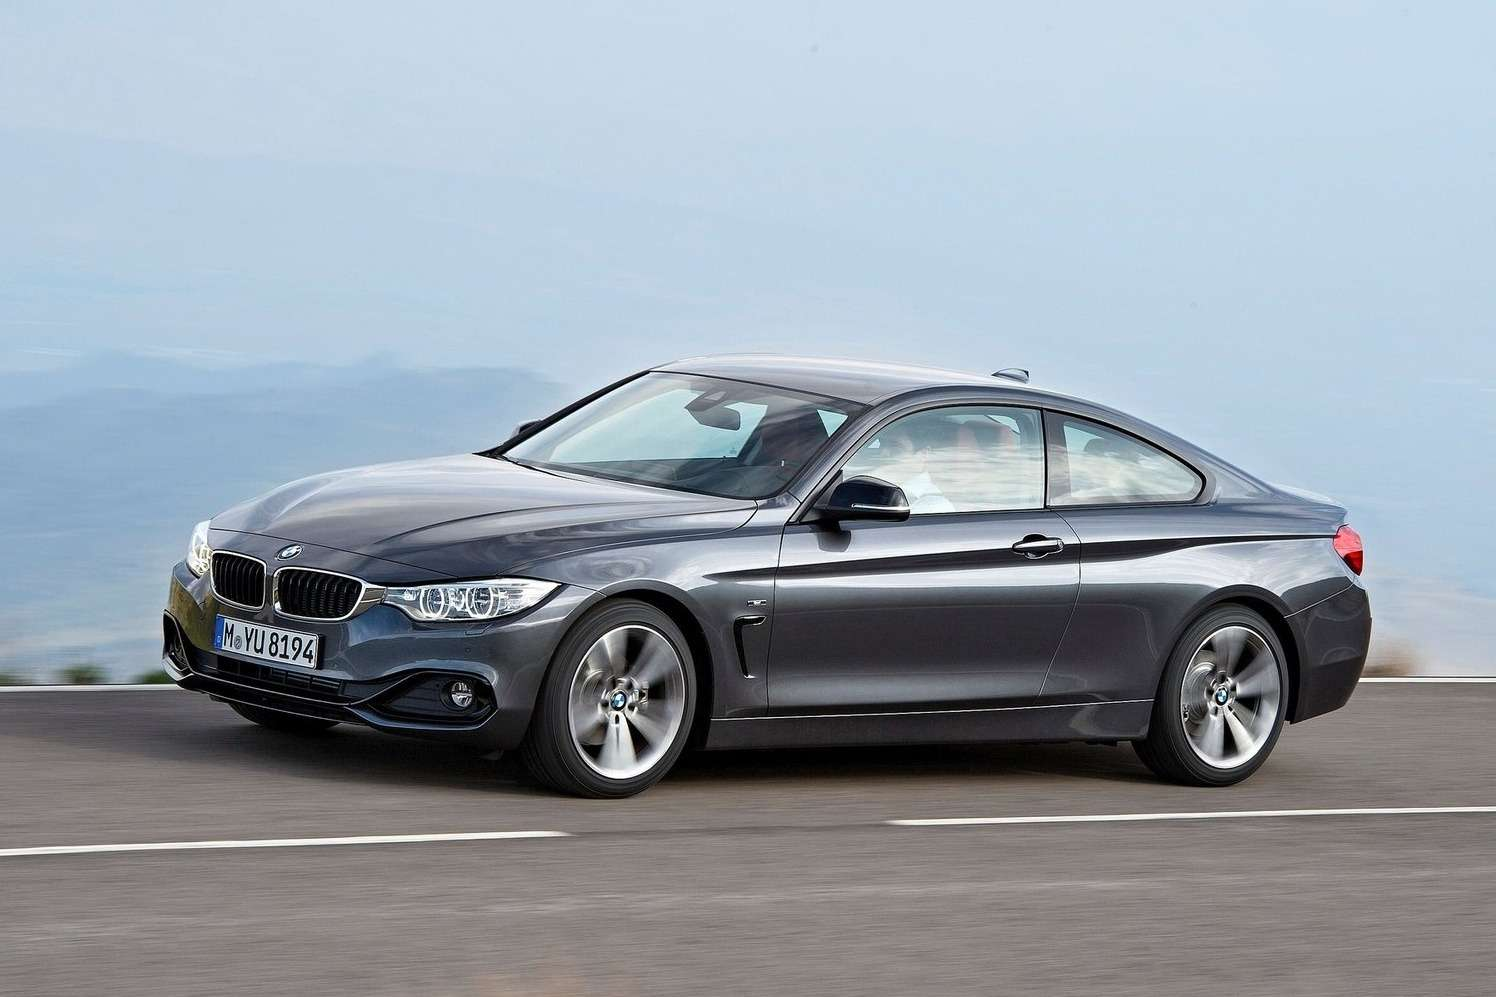 BMW-4-Series_Coupe_2014_1600x1200_wallpaper_06